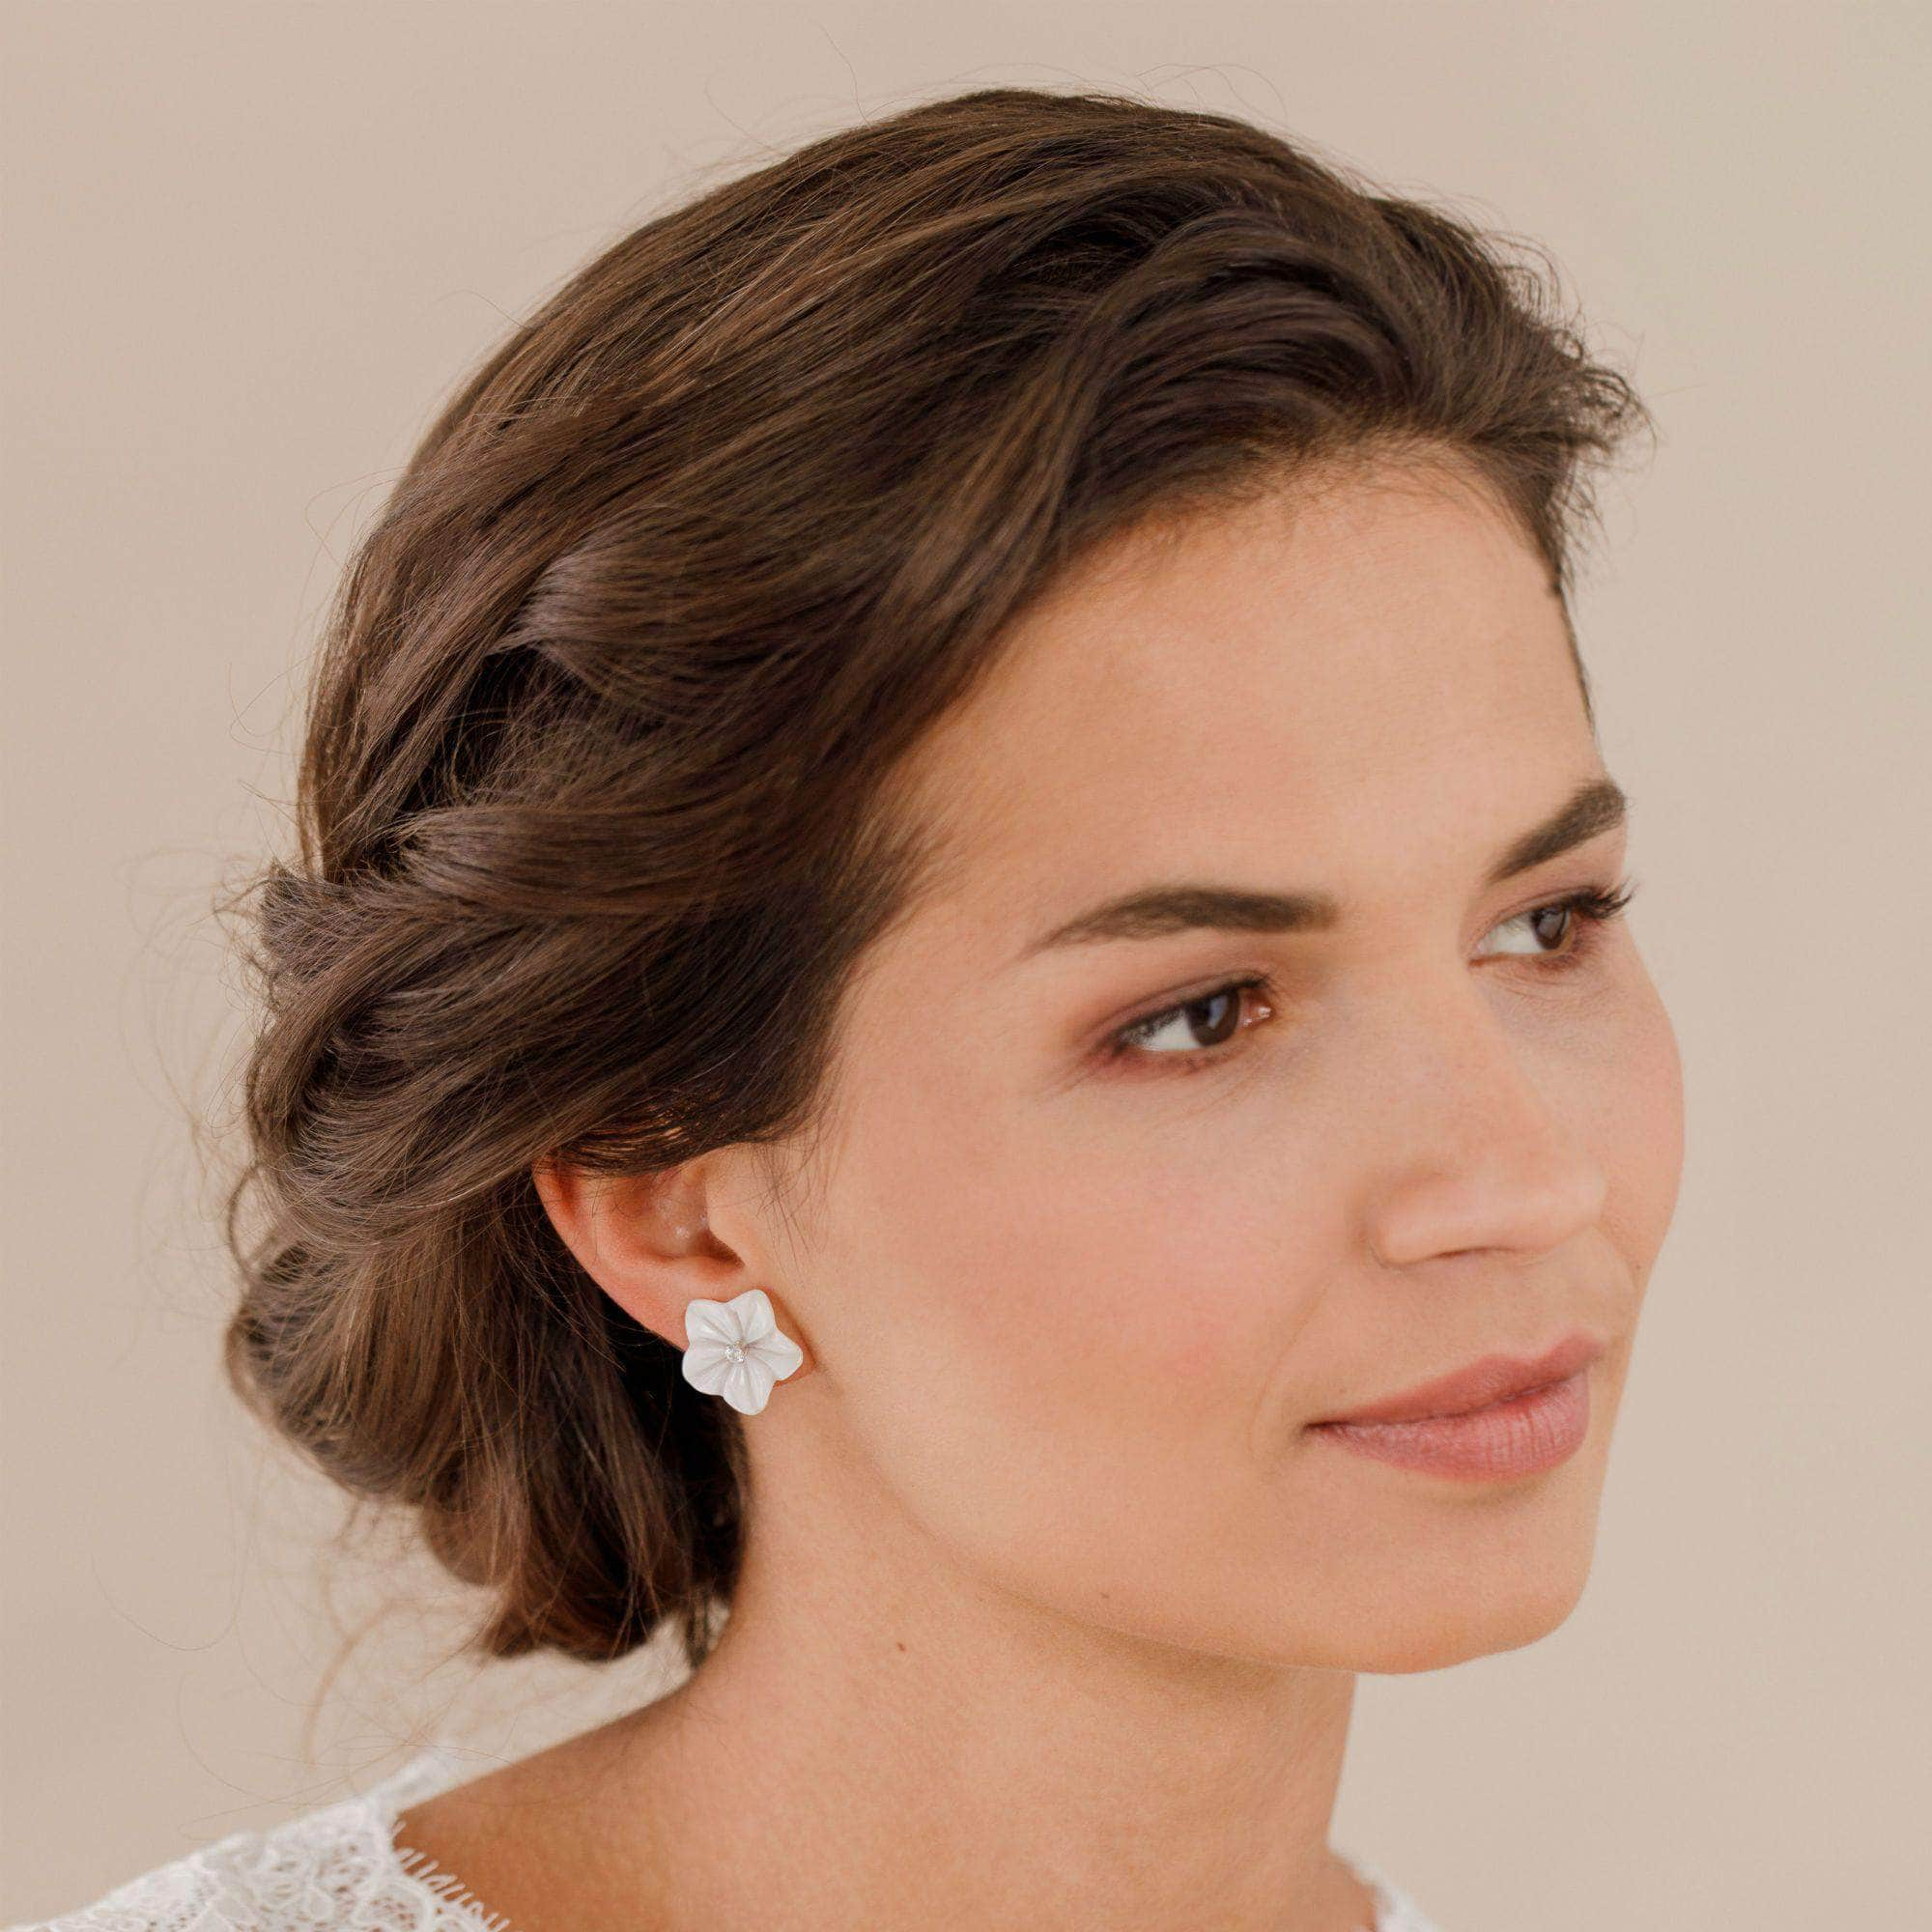 Flower wedding earrings